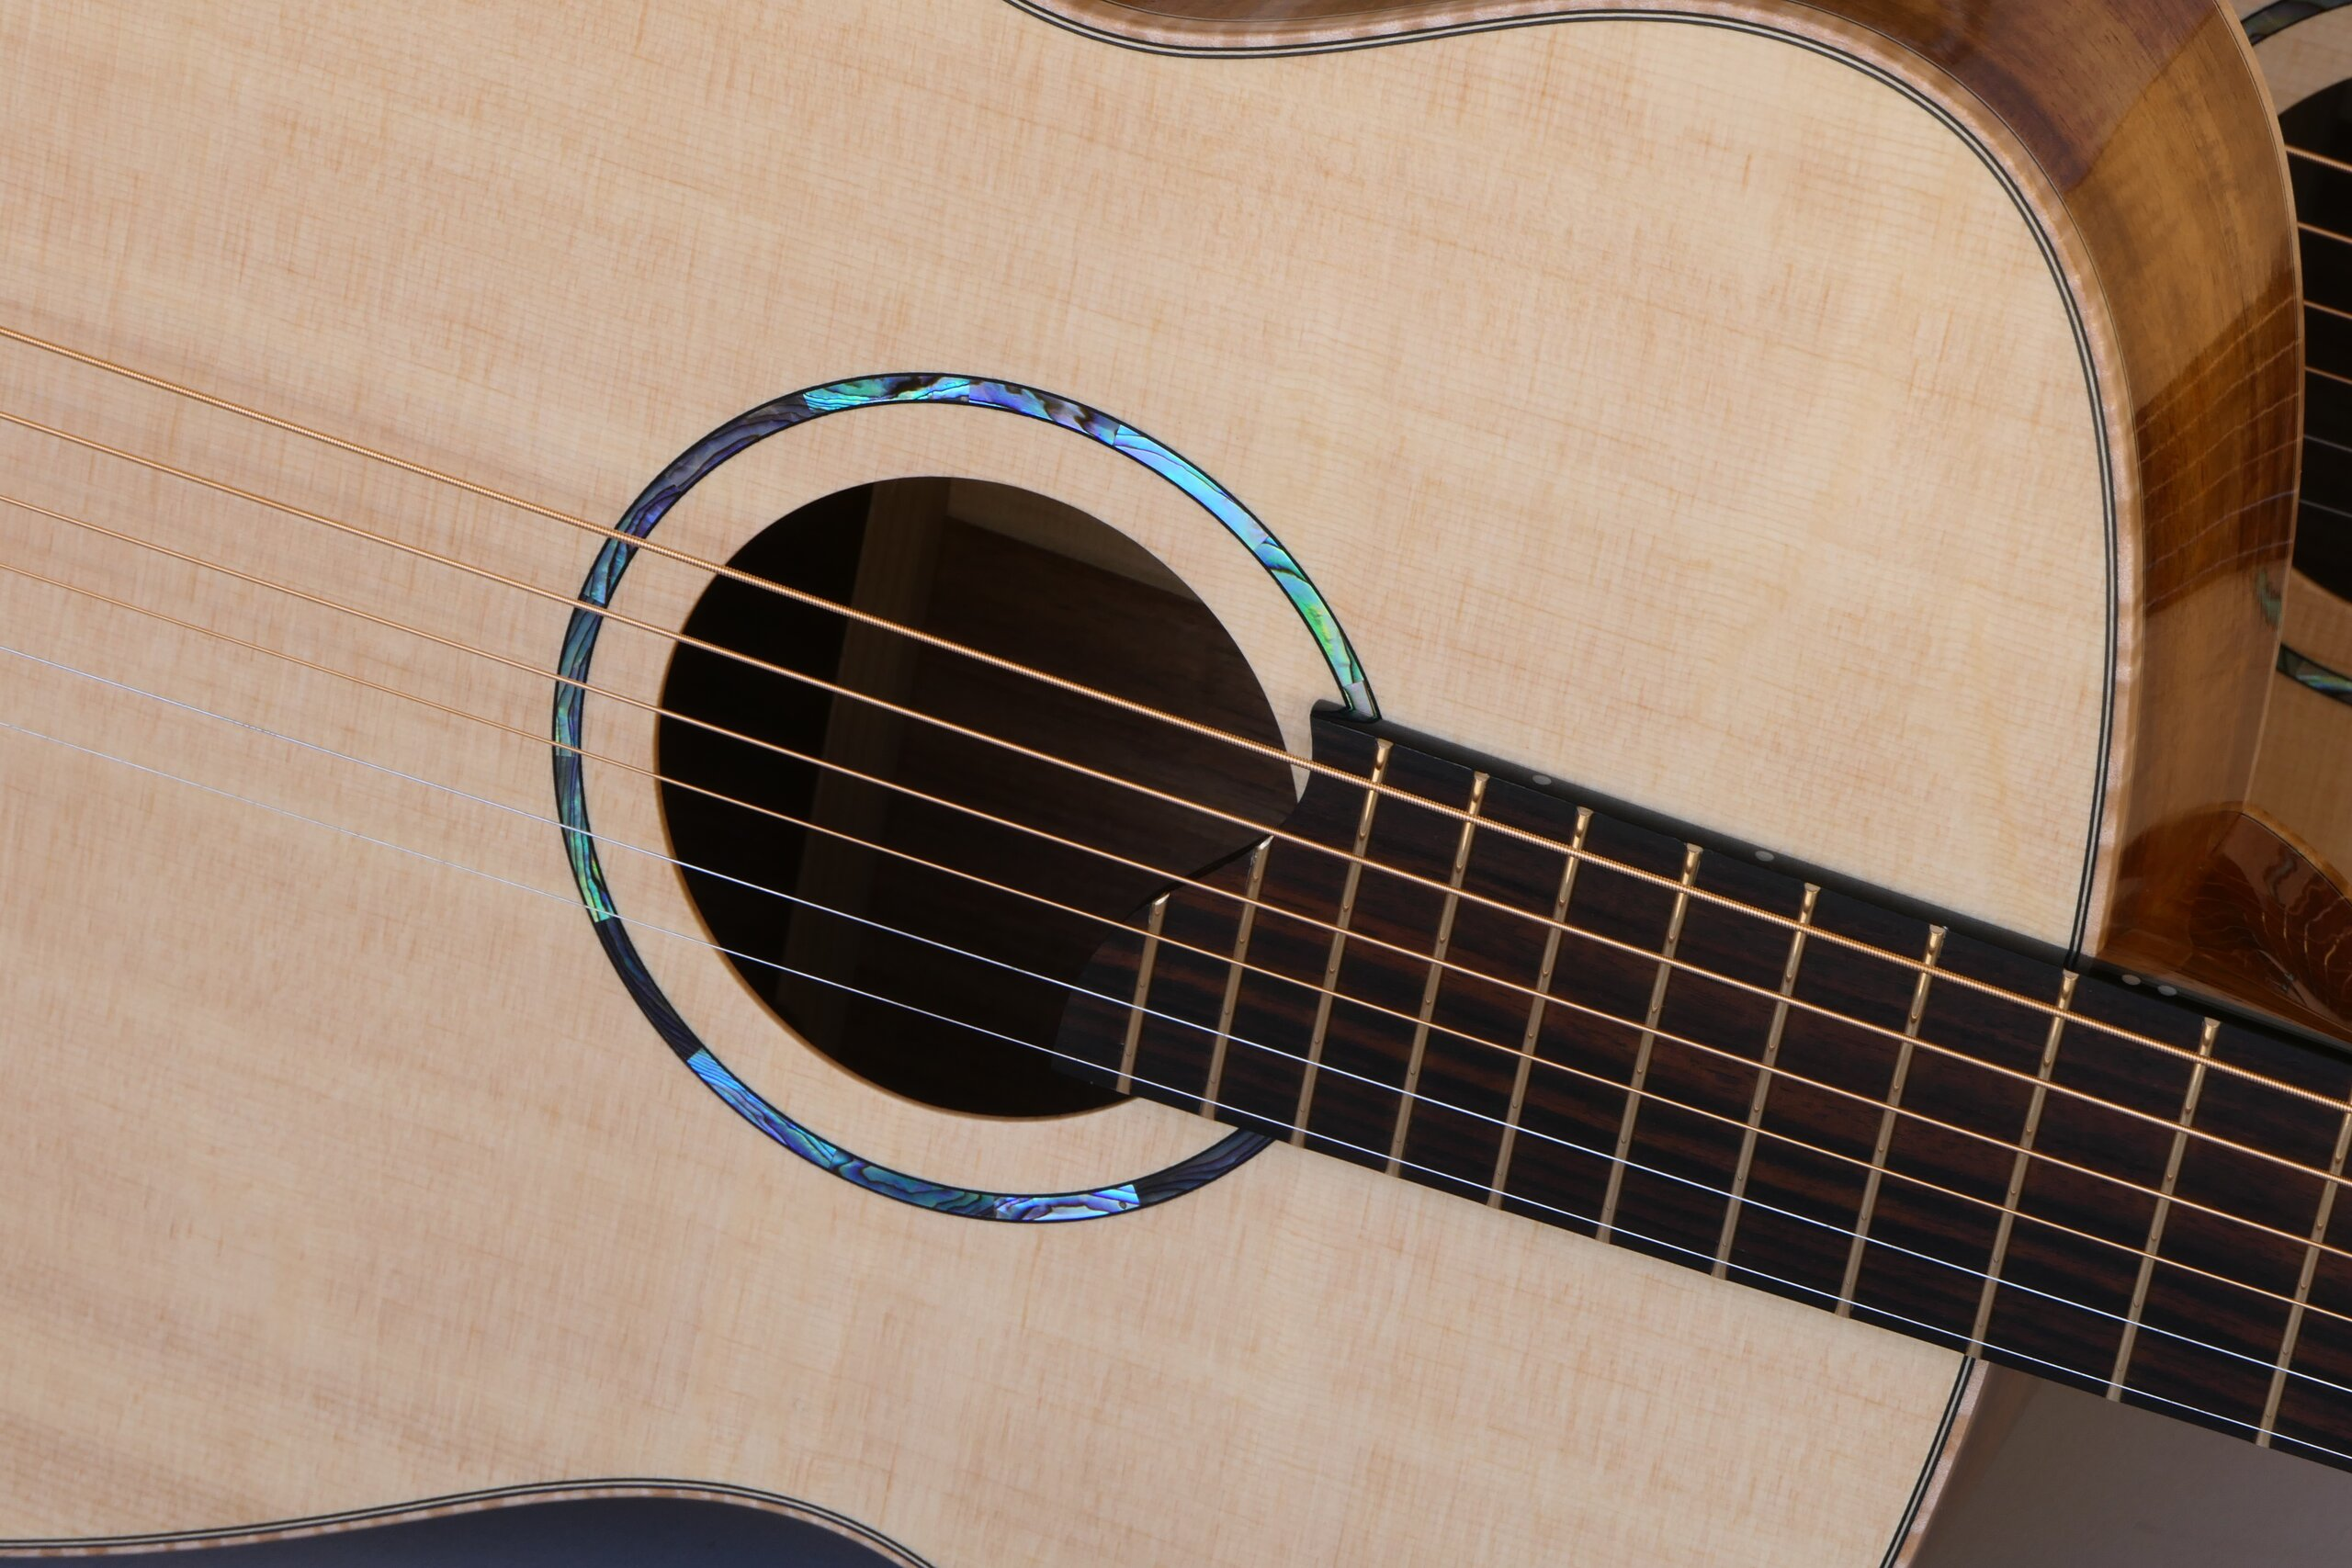 Small body steel string guitar with simple paua rosette